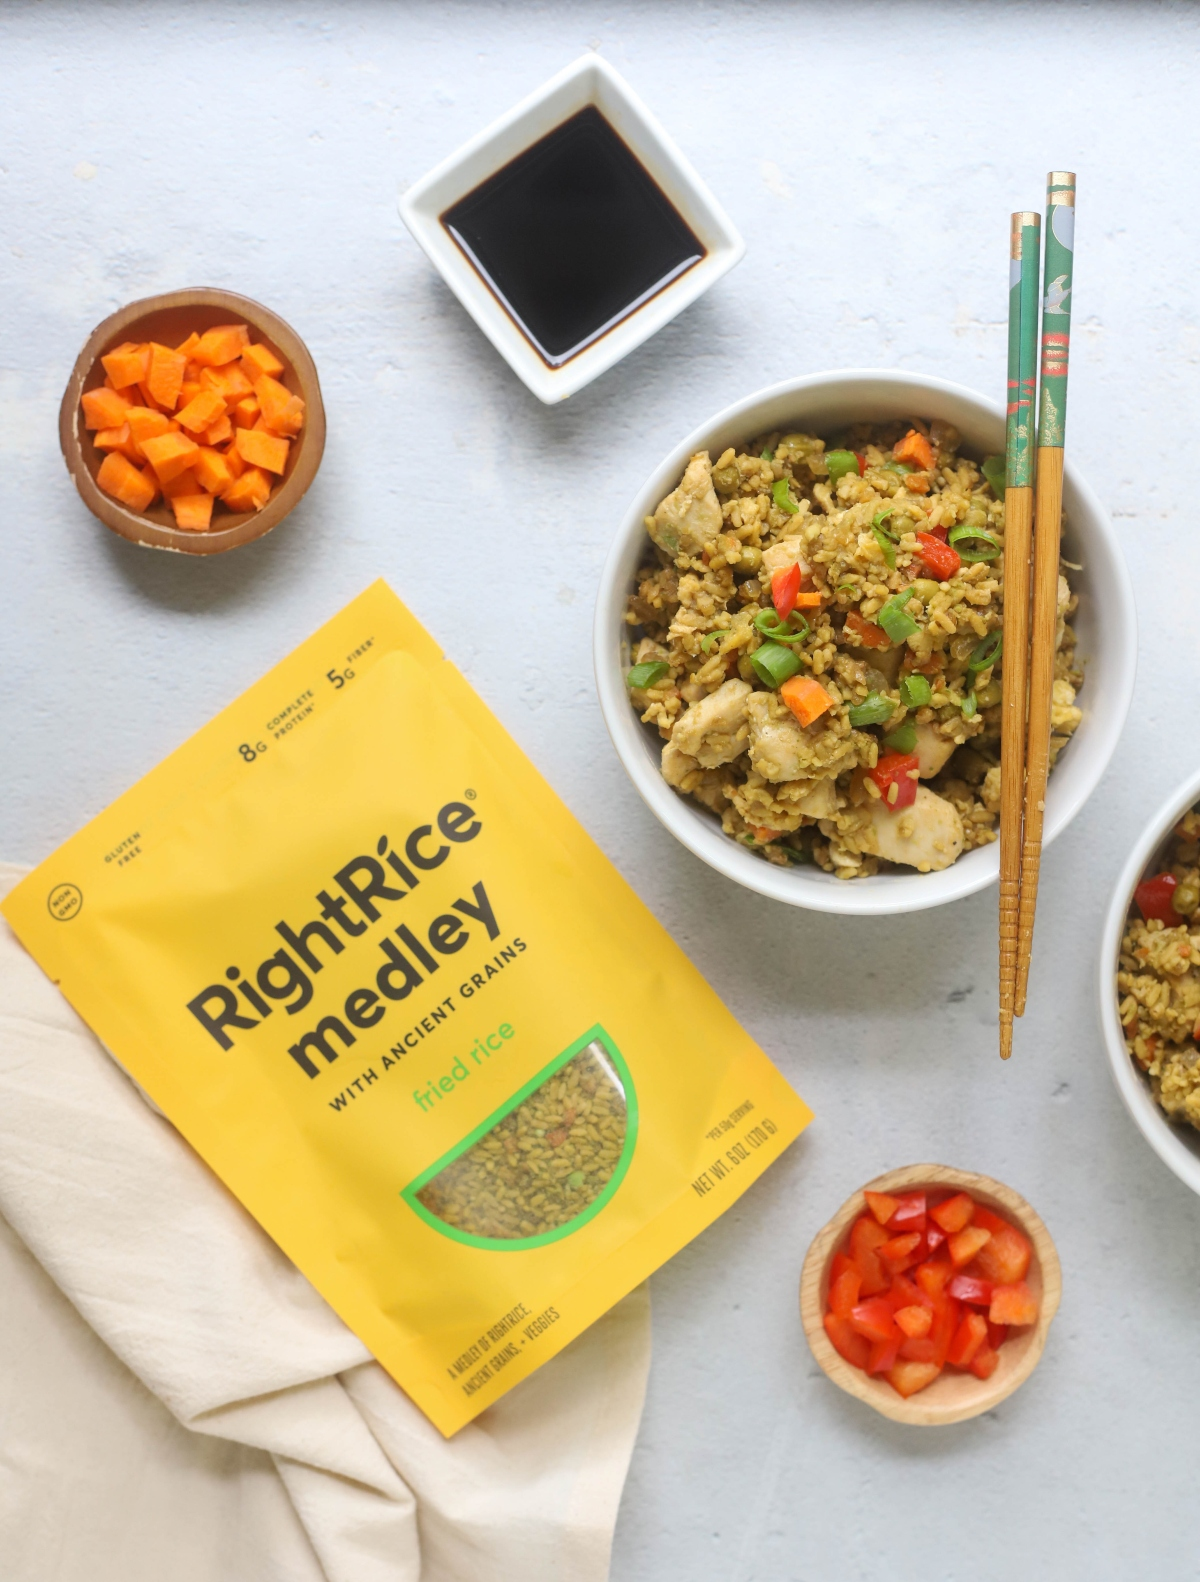 RichtRice package and a bowl of fried rice